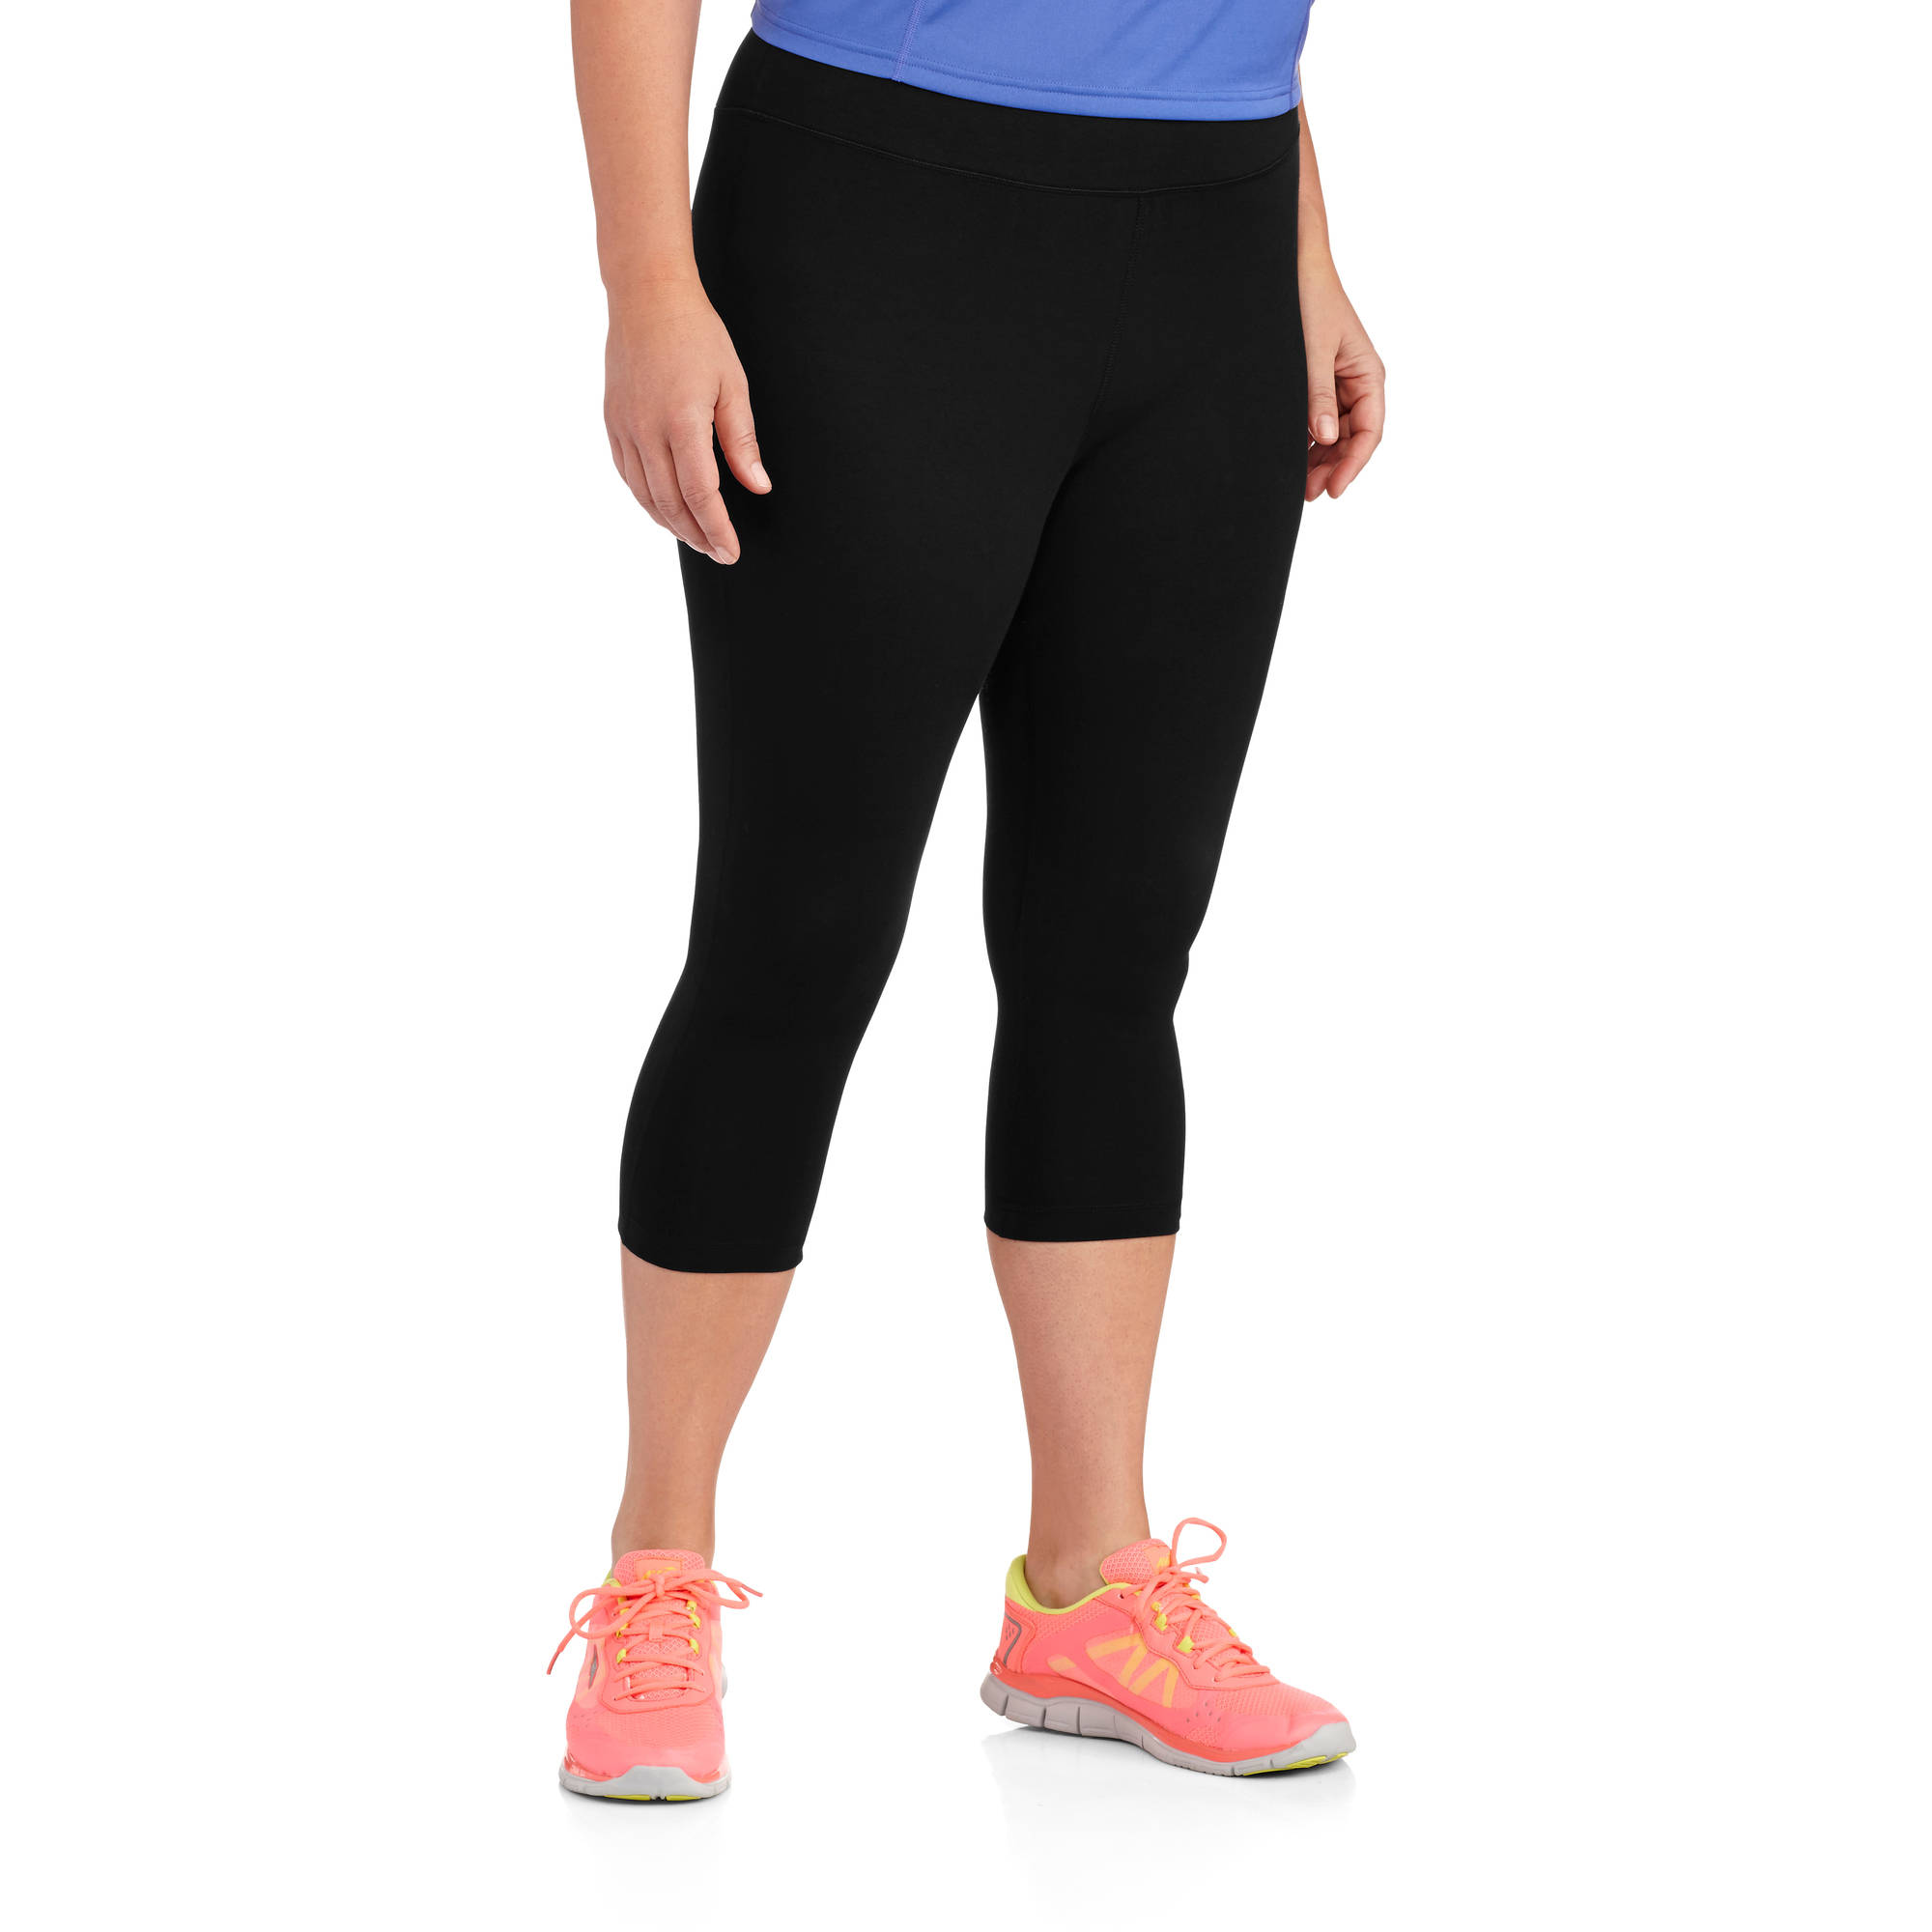 Women's Plus Activewear - Walmart.com